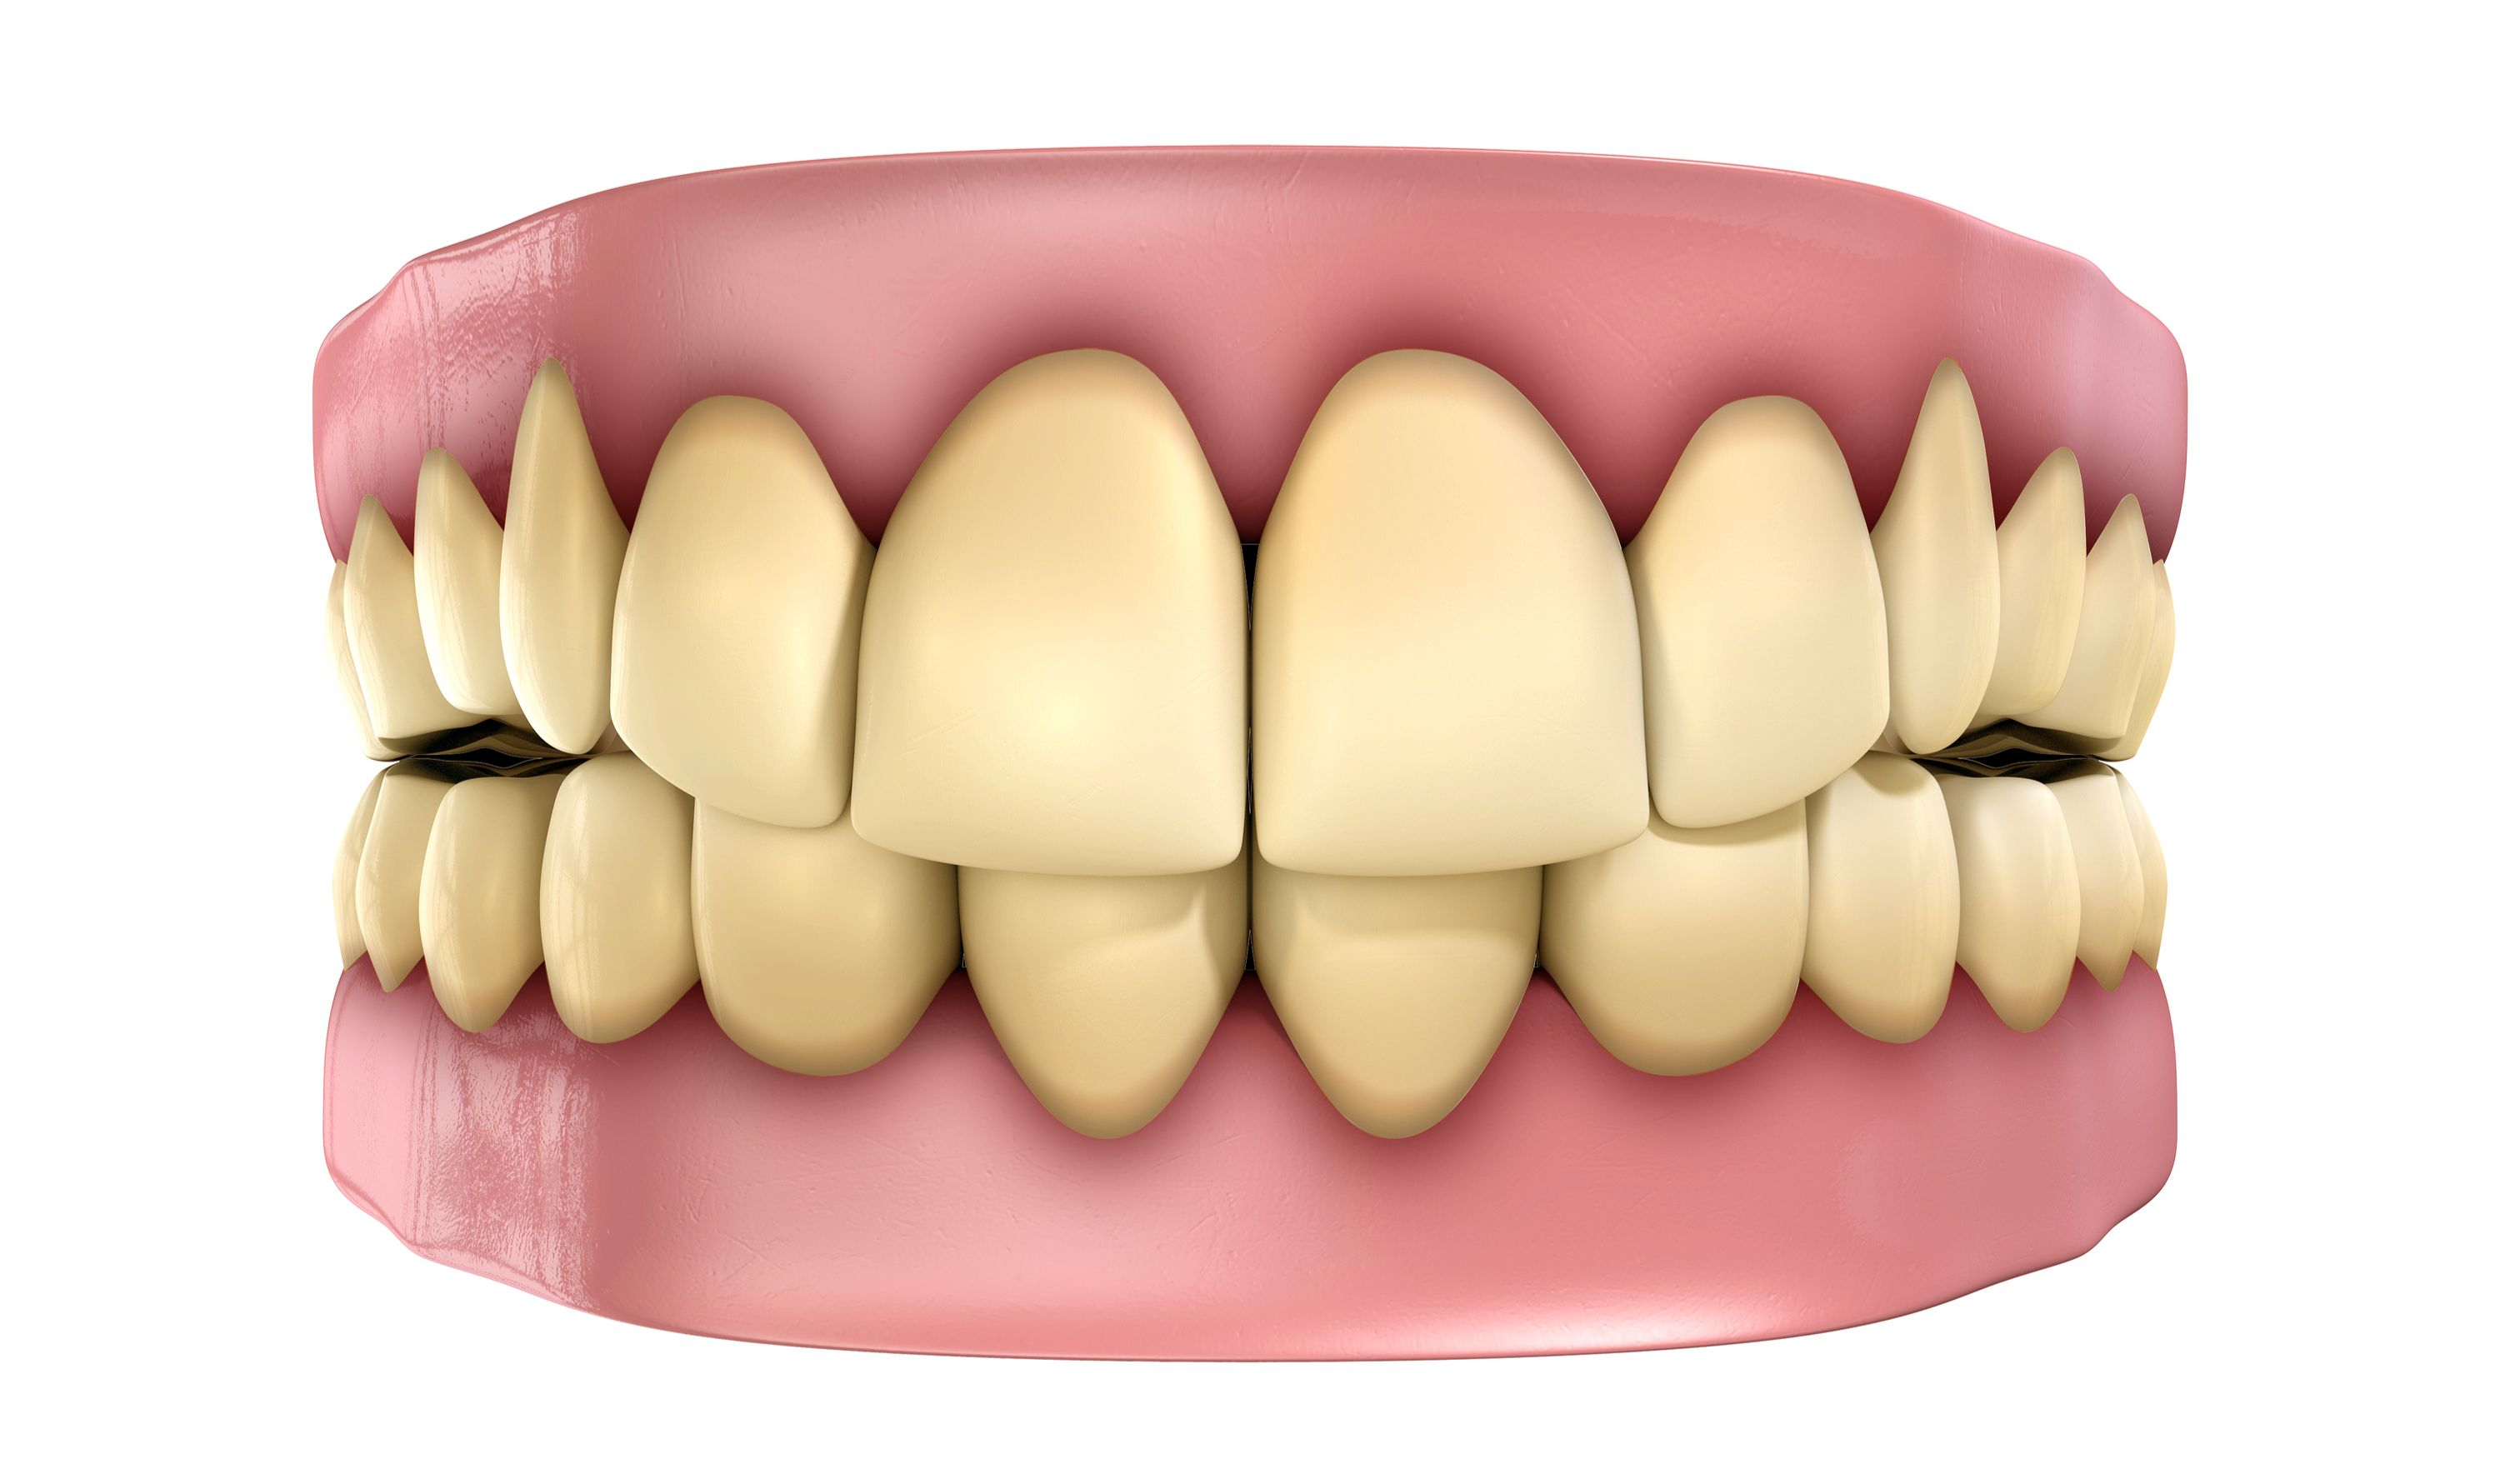 Digital image of dental model with stained teeth